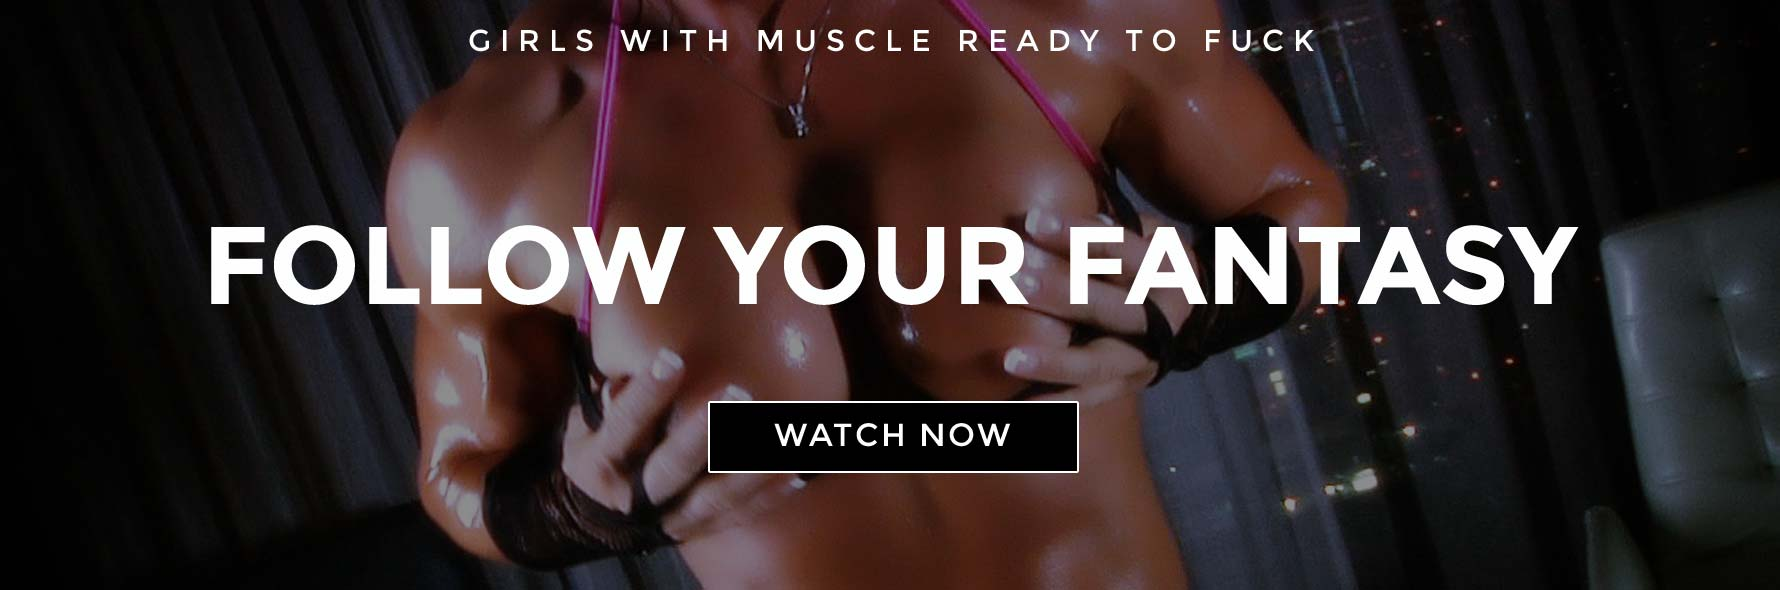 Start watching muscle girl webcams now banner